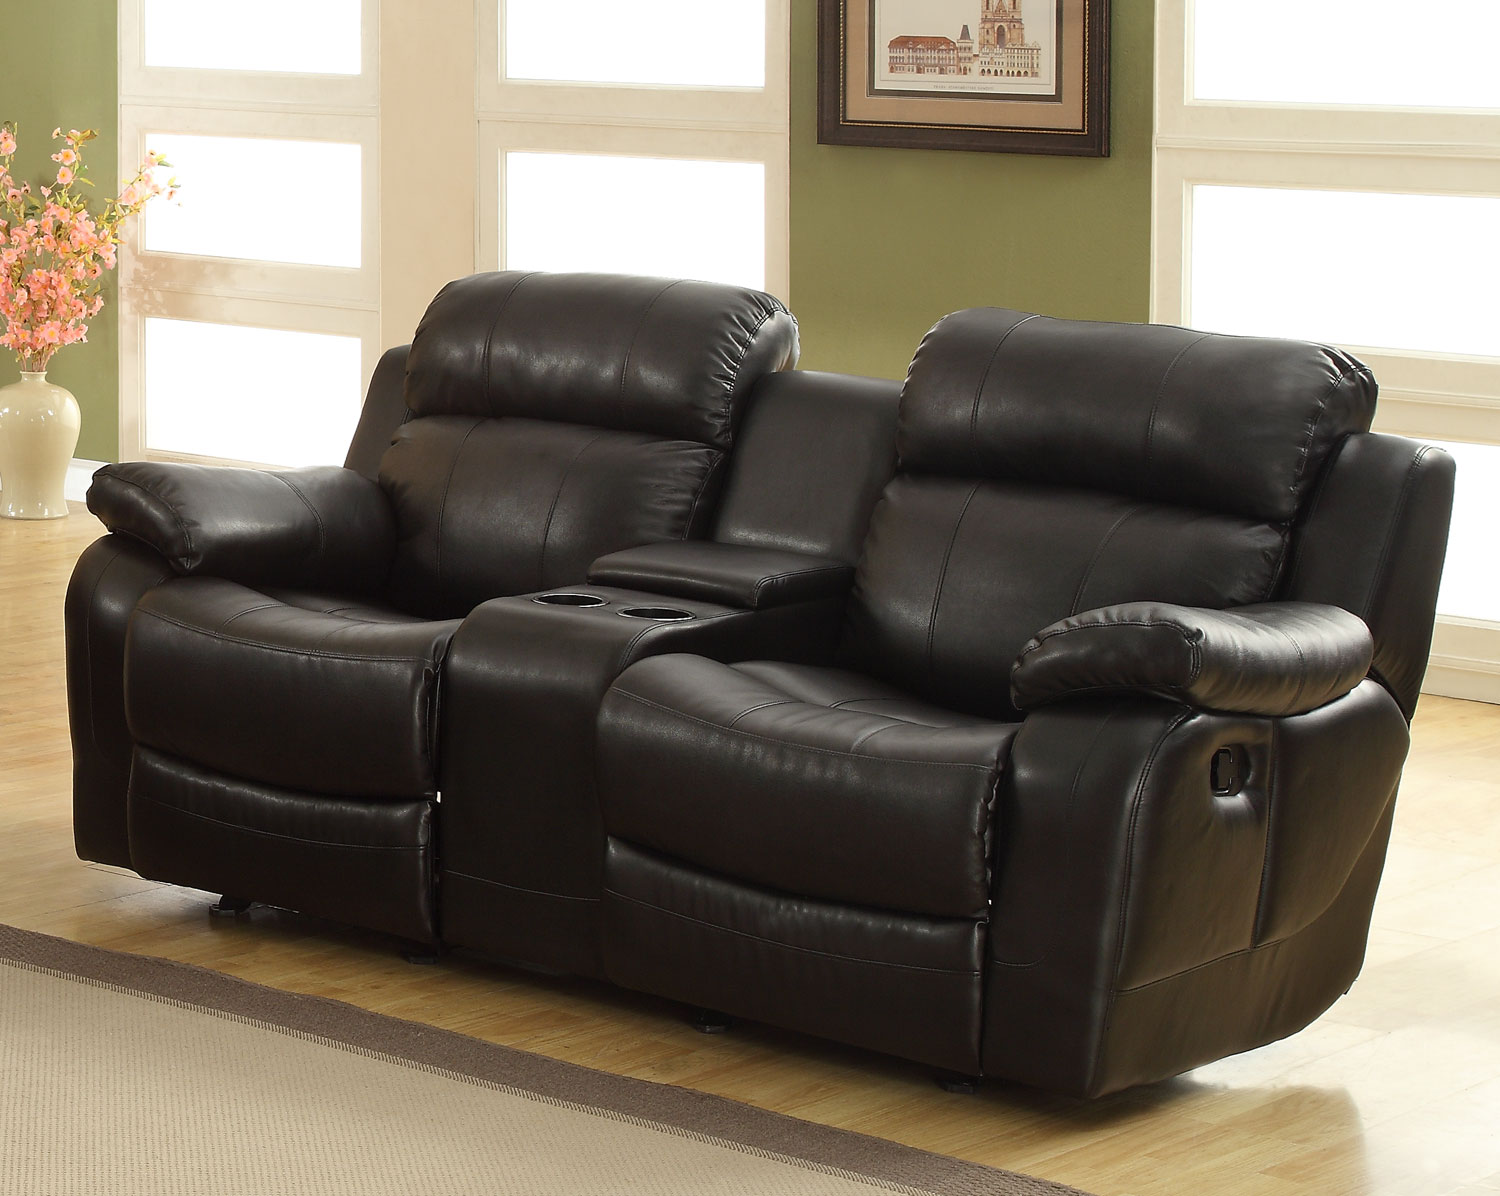 Homelegance marille love seat glider recliner with center console black bonded leather match Leather loveseat recliners